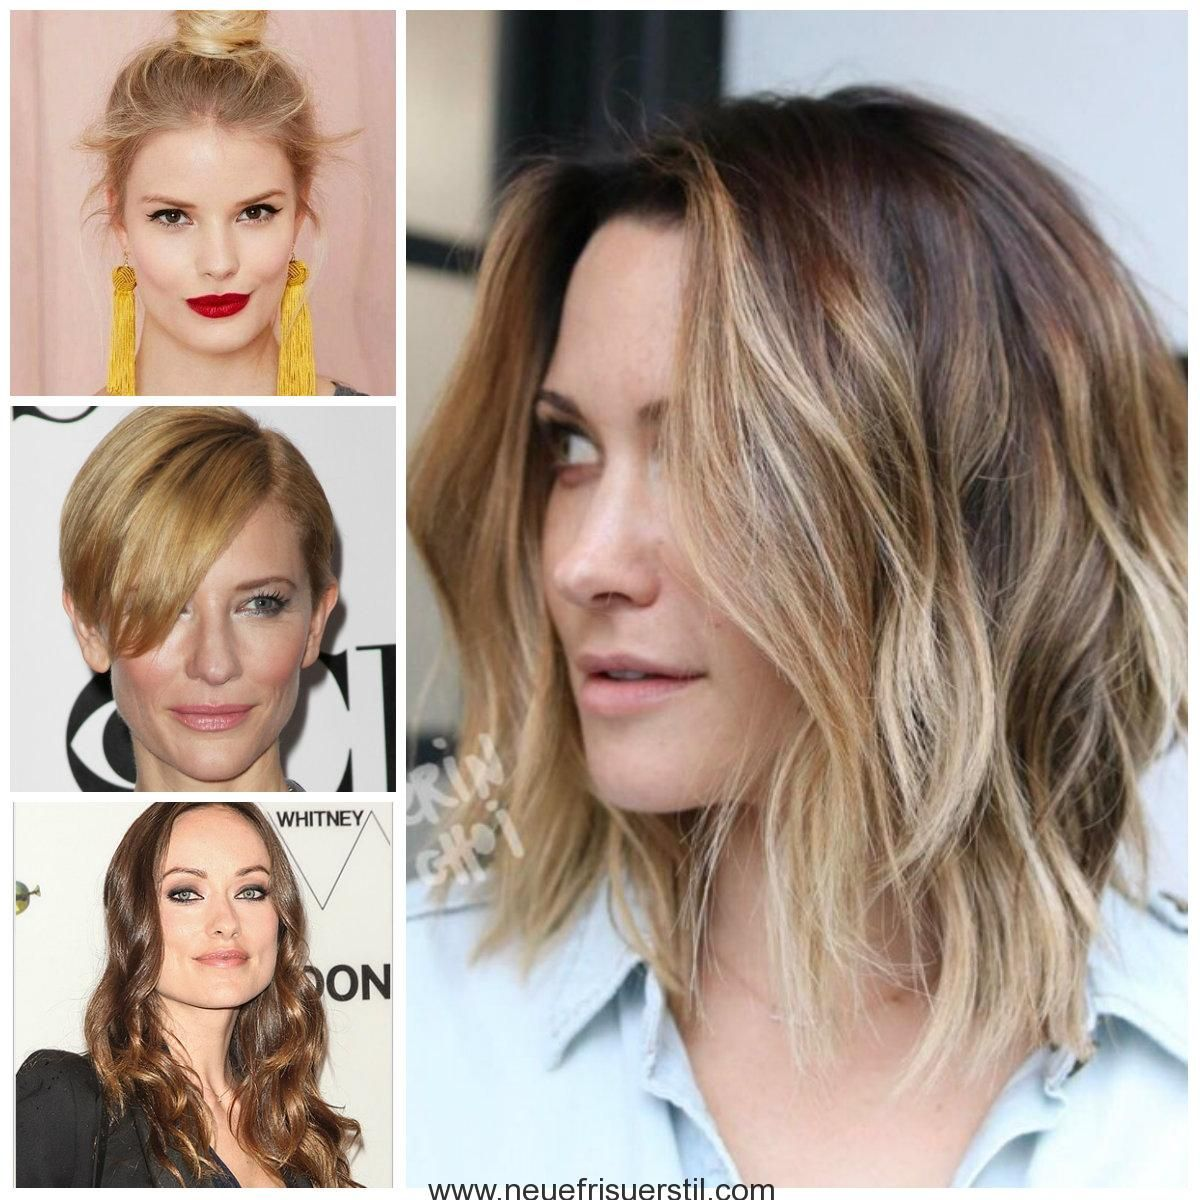 hairstyles for women with square faces in 2018 | new hairstyles 2018